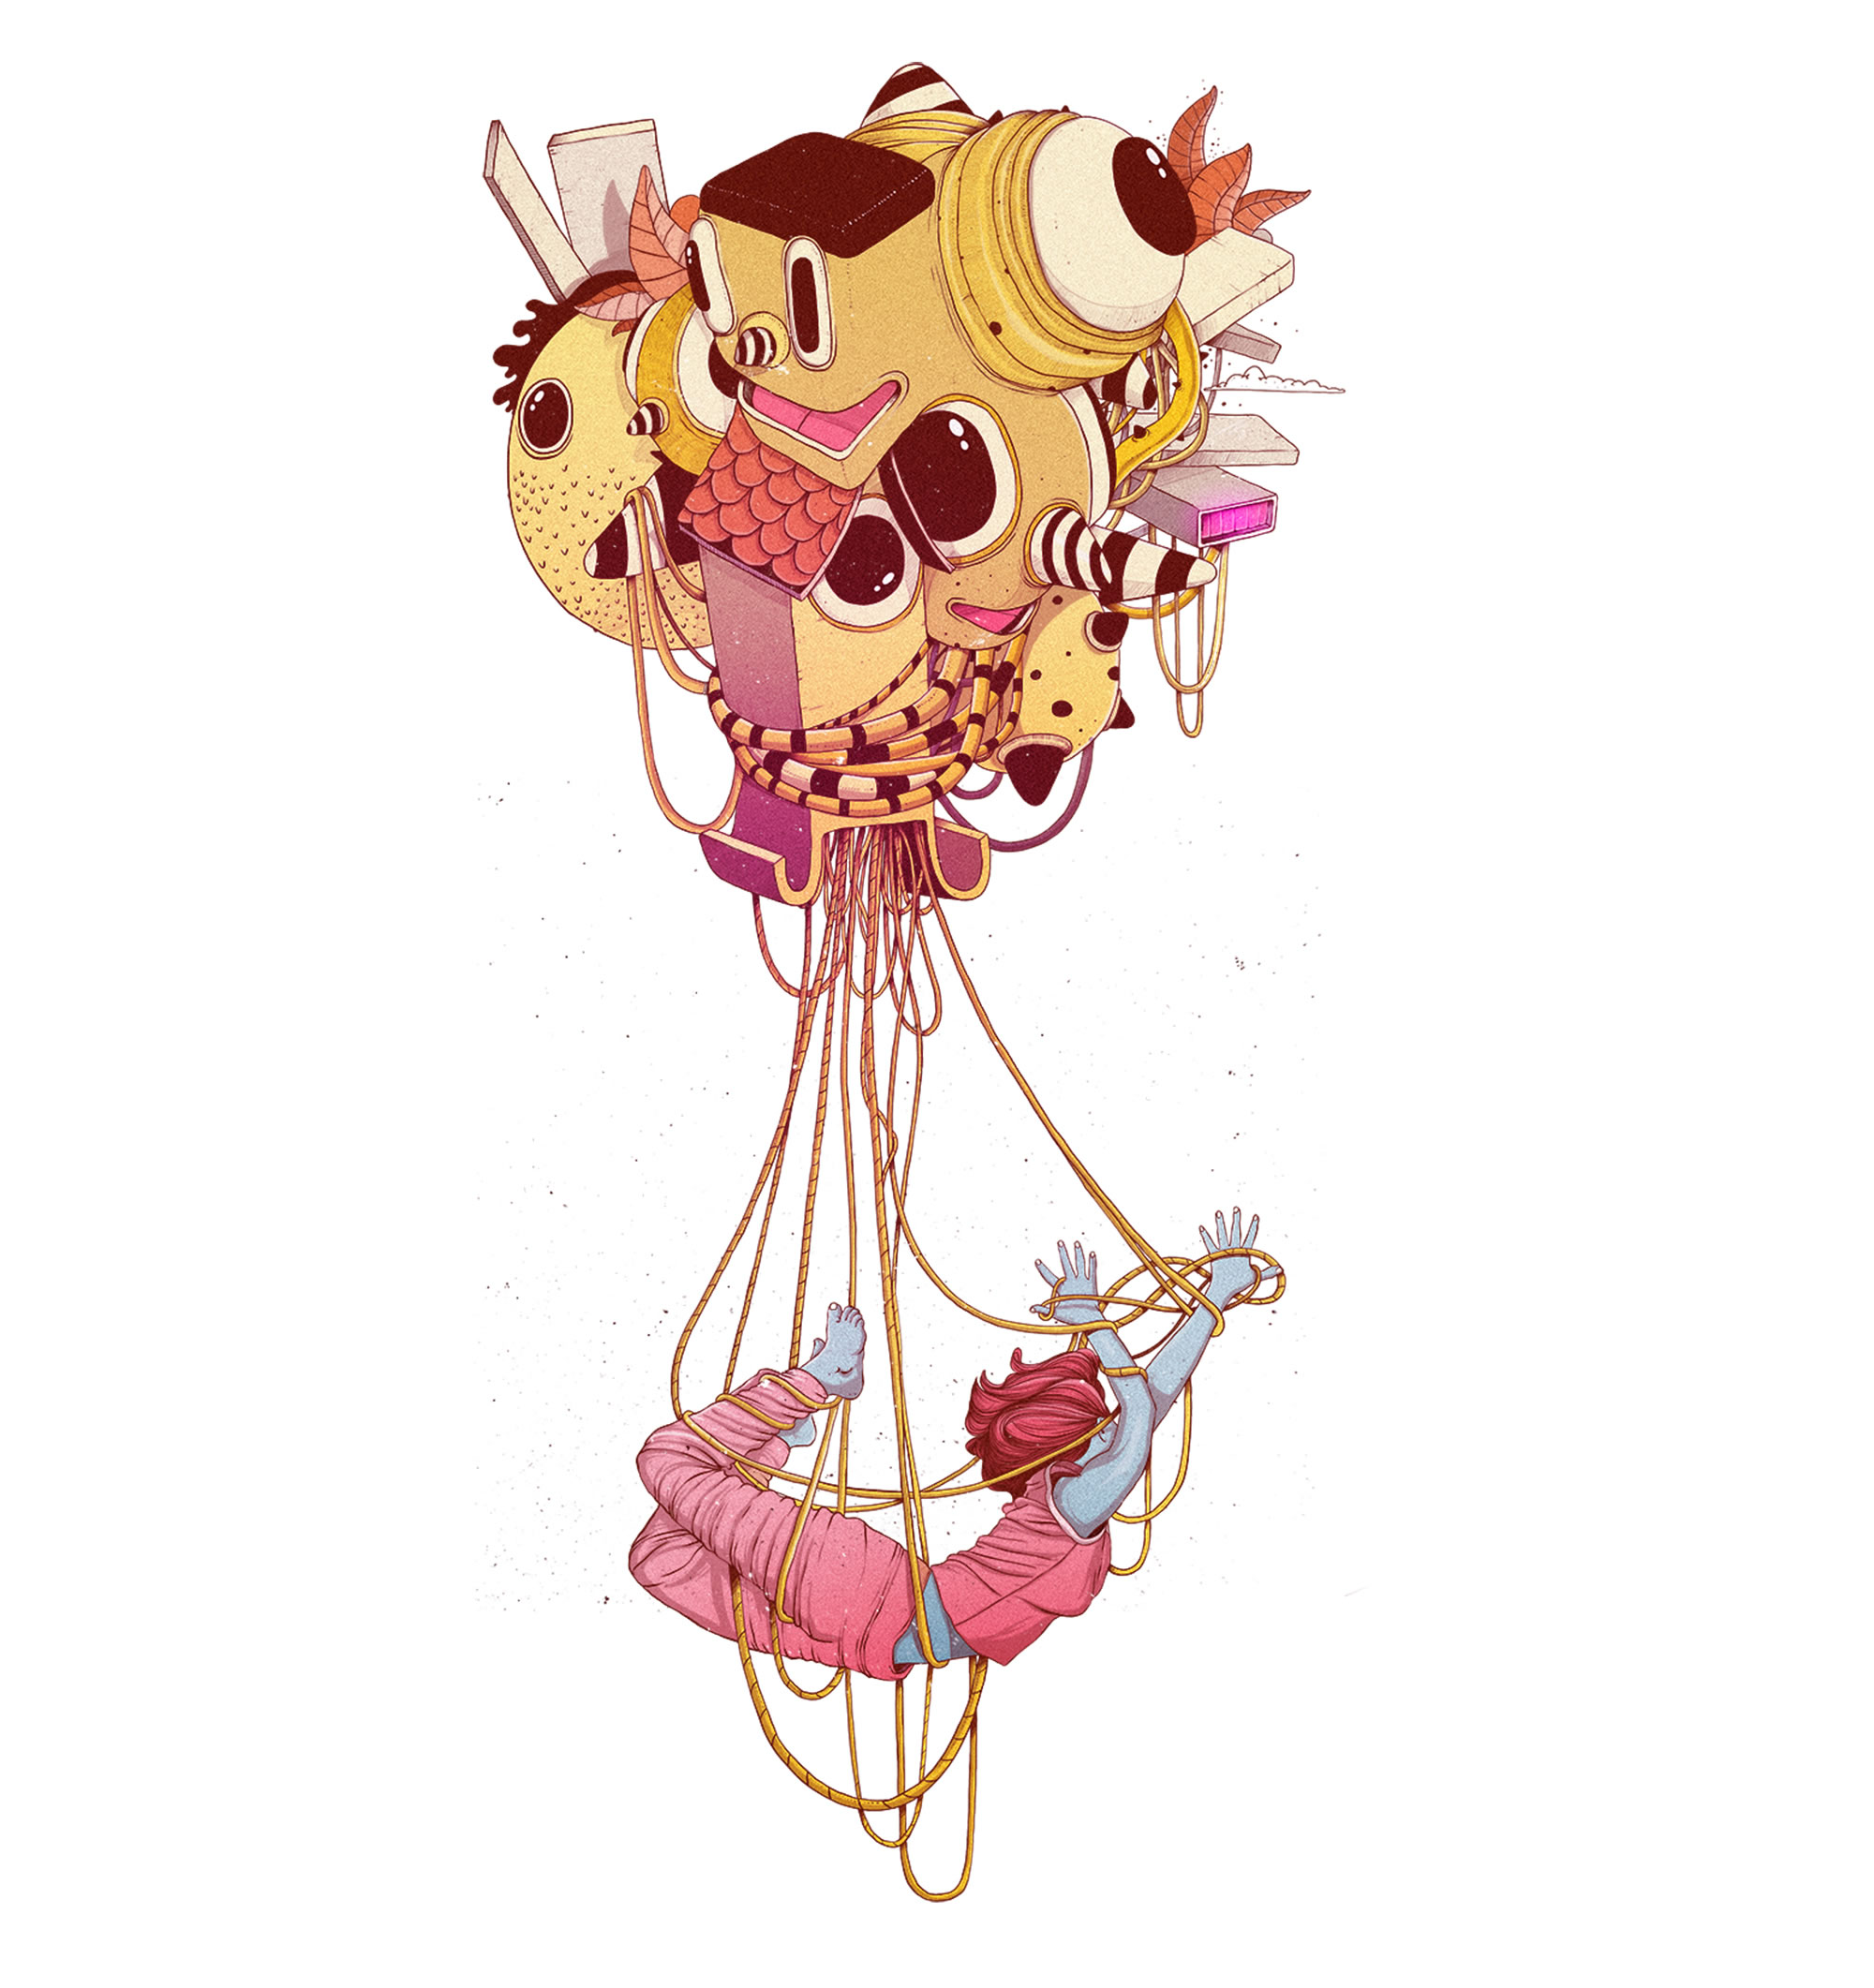 migraine, girl hanging from a balloon of junk